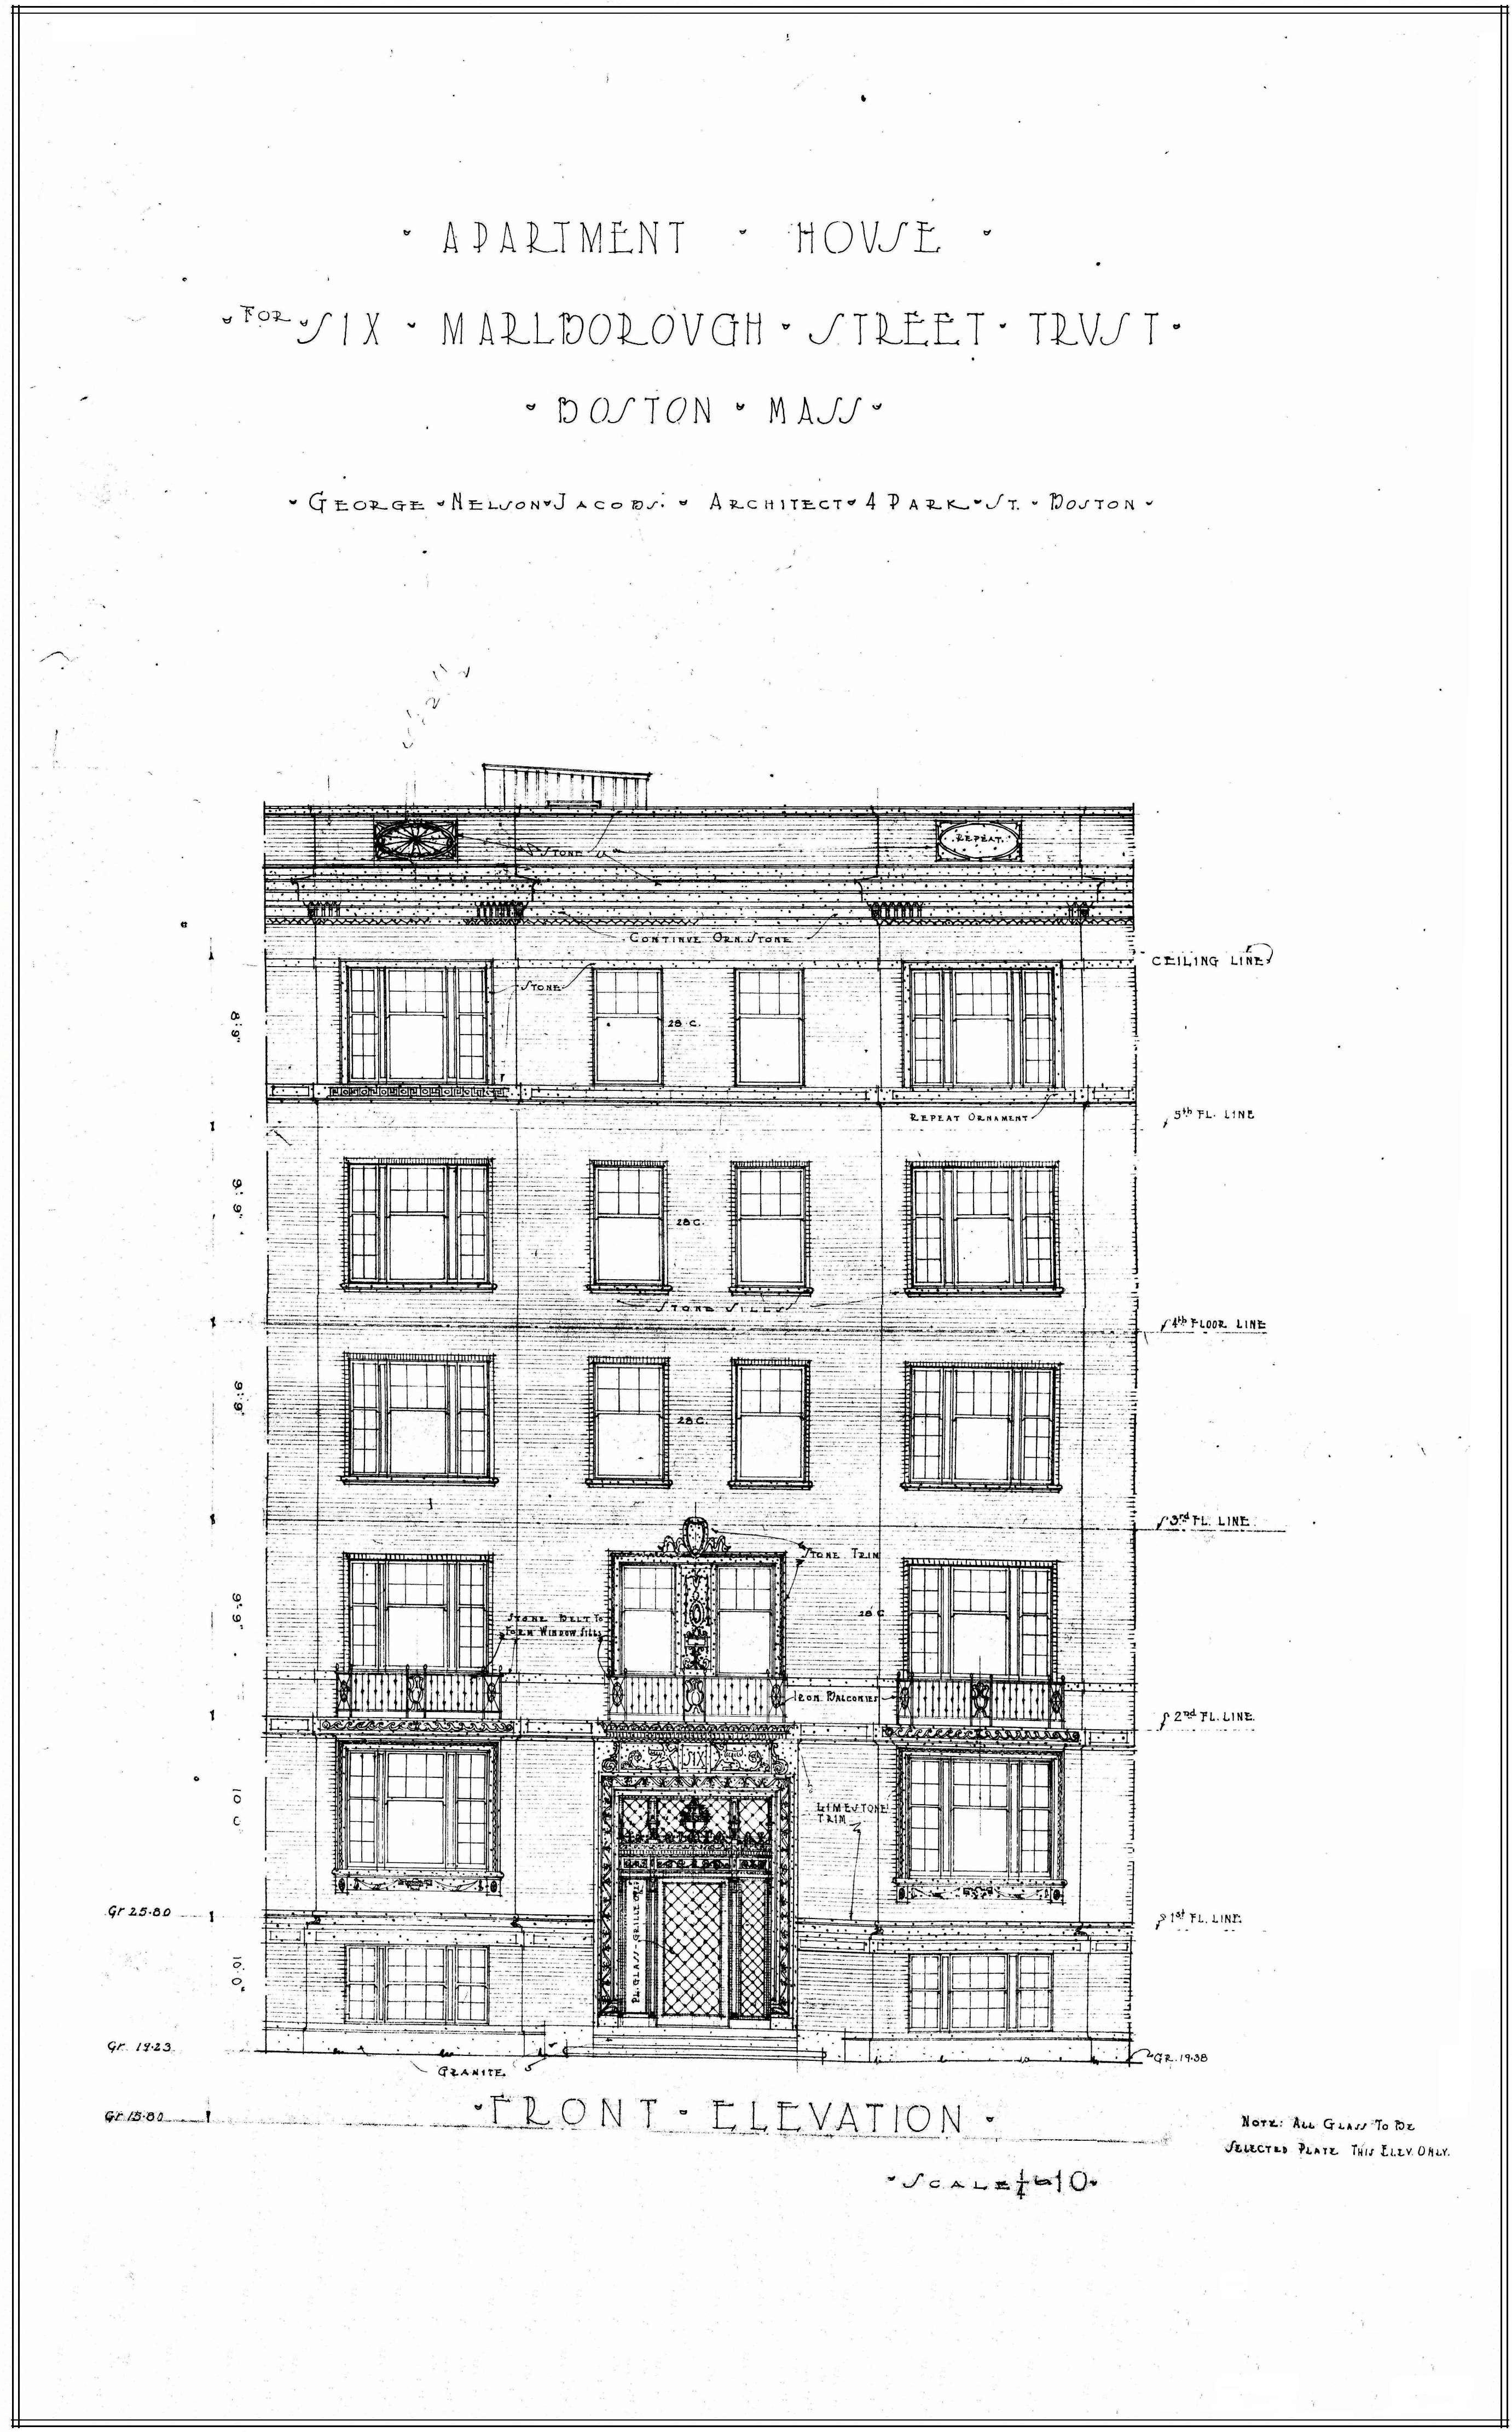 6 marlborough back bay houses architectural rendering of the front elevation of 6 marlborough by architect george nelson jacobs oct1924 malvernweather Gallery